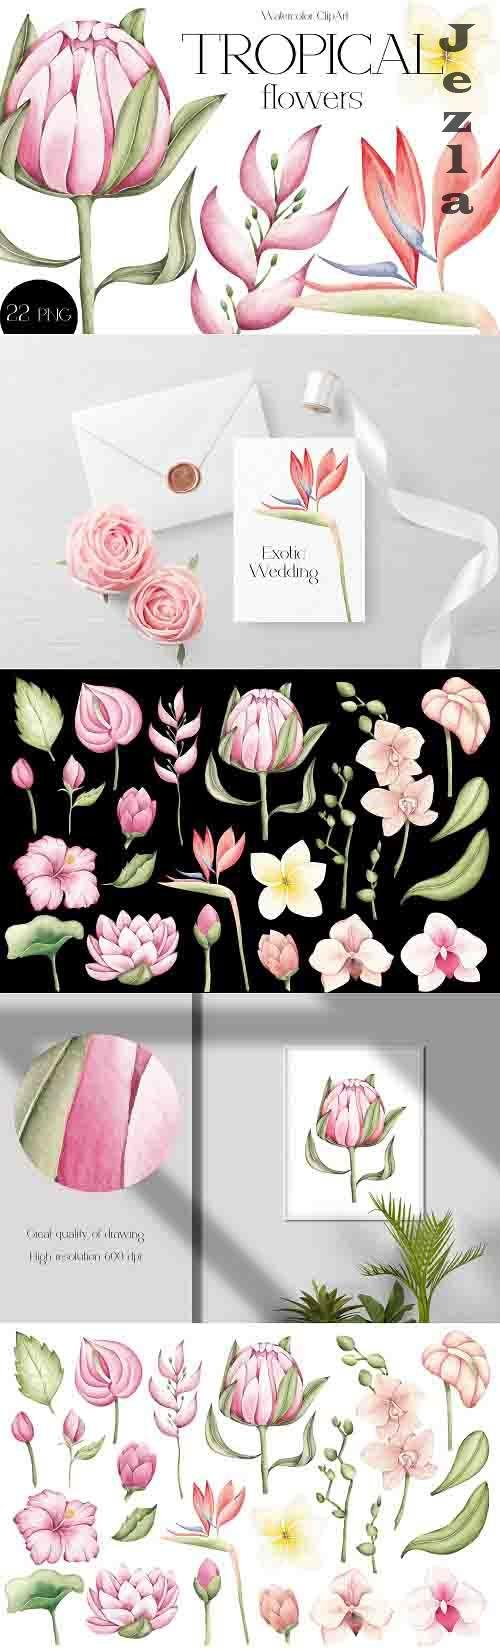 Watercolor ClipArt Tropical Flowers - 1418481